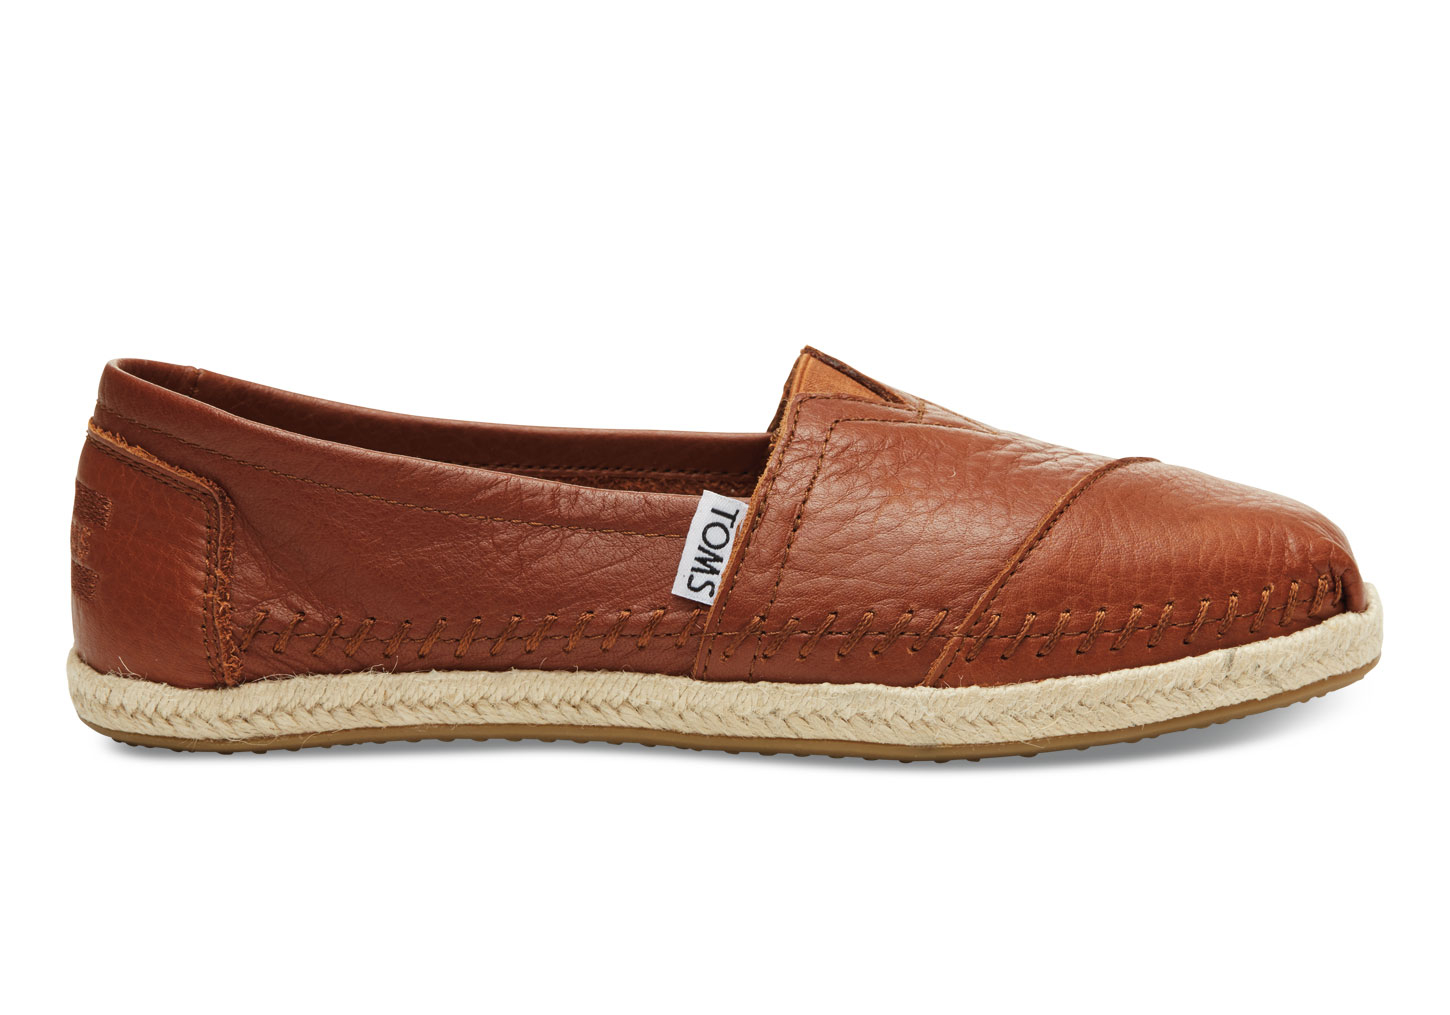 Shop TOMS women's shoes like slip ons, slippers, boots, sandals, wedges and flats. For every pair purchased, TOMS gives new shoes to a child in need.